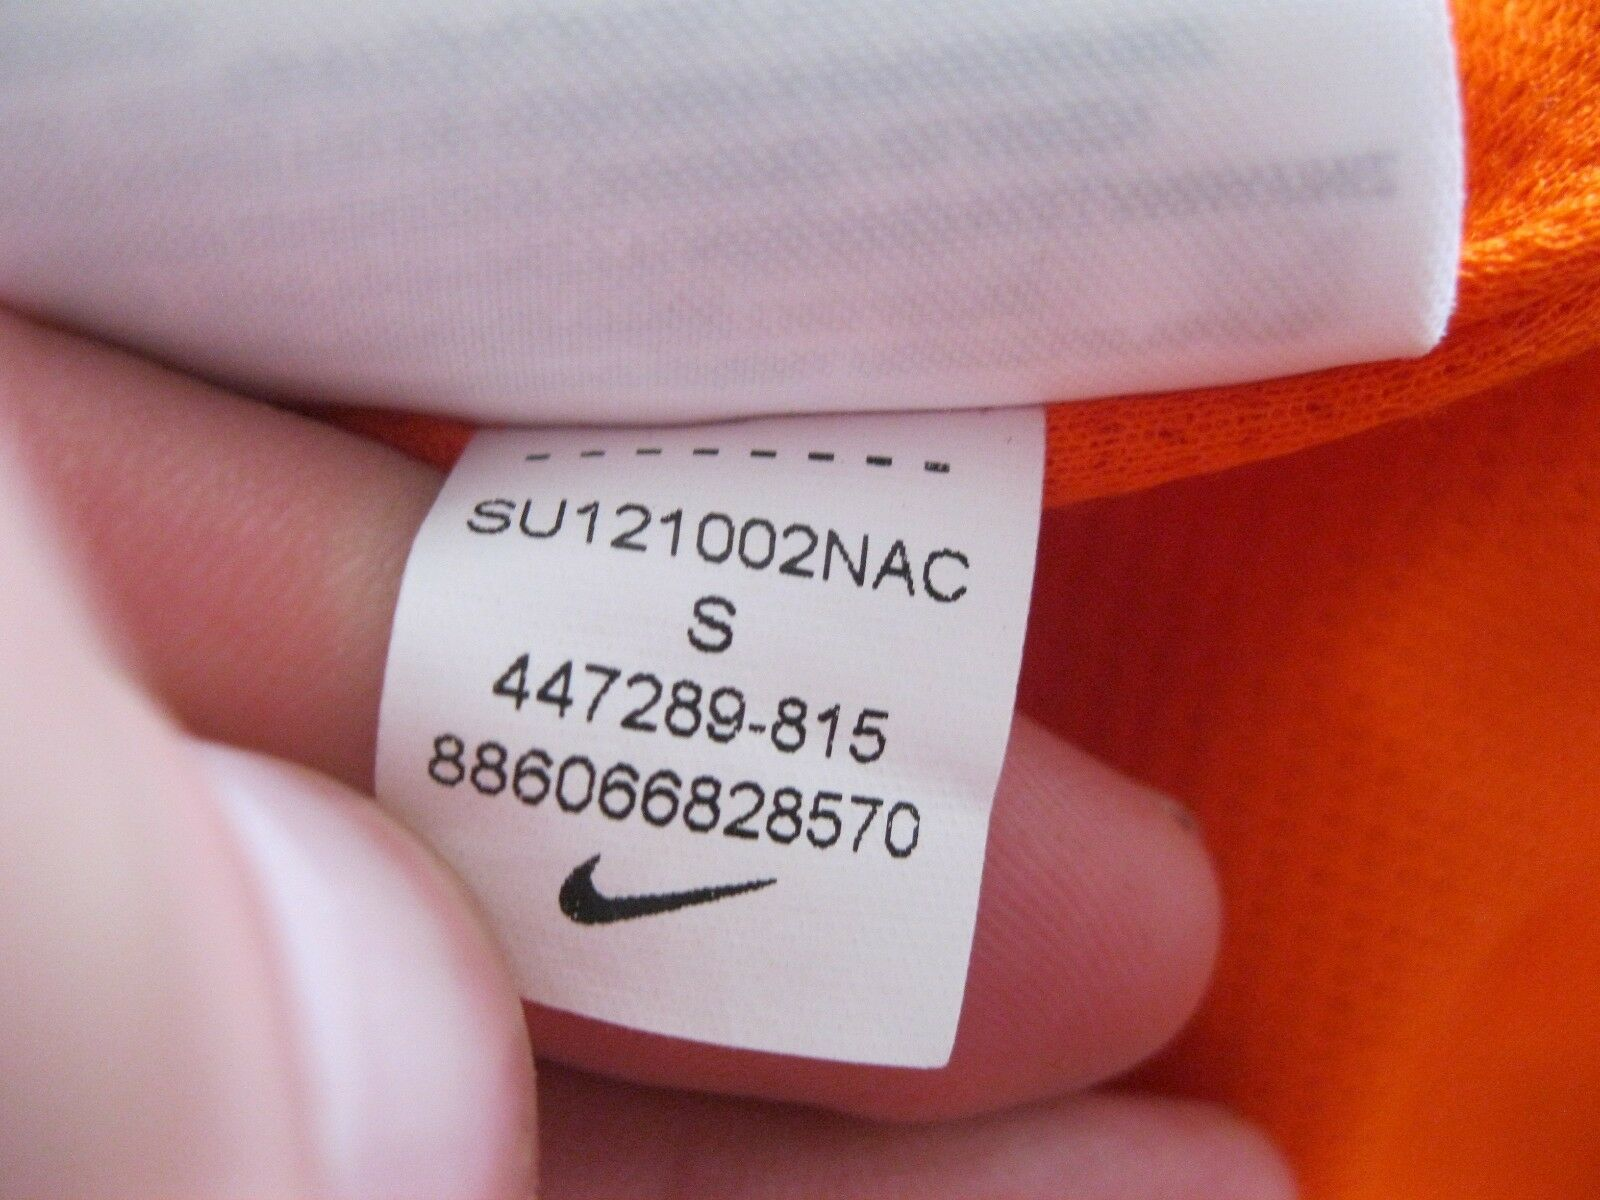 Netherlands 2012/2013/2014 home Size S Nike 447289-815 jersey